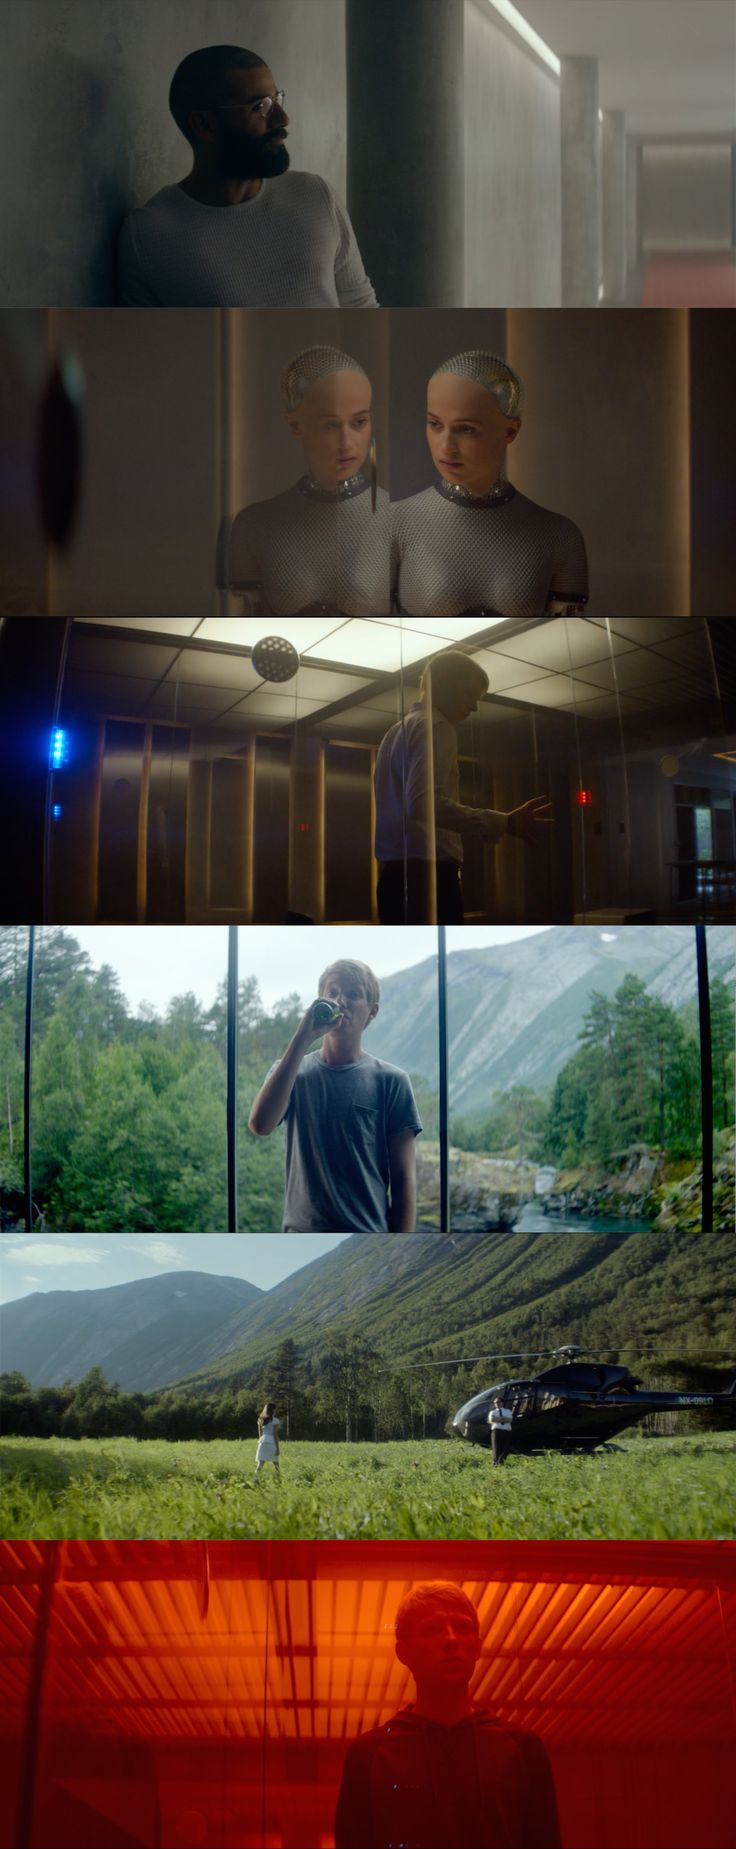 One window 12 aug 2007 photograph rachelcreative - Ex Machina 2015 Excellent Film In Terms Of Narrative And Visuals